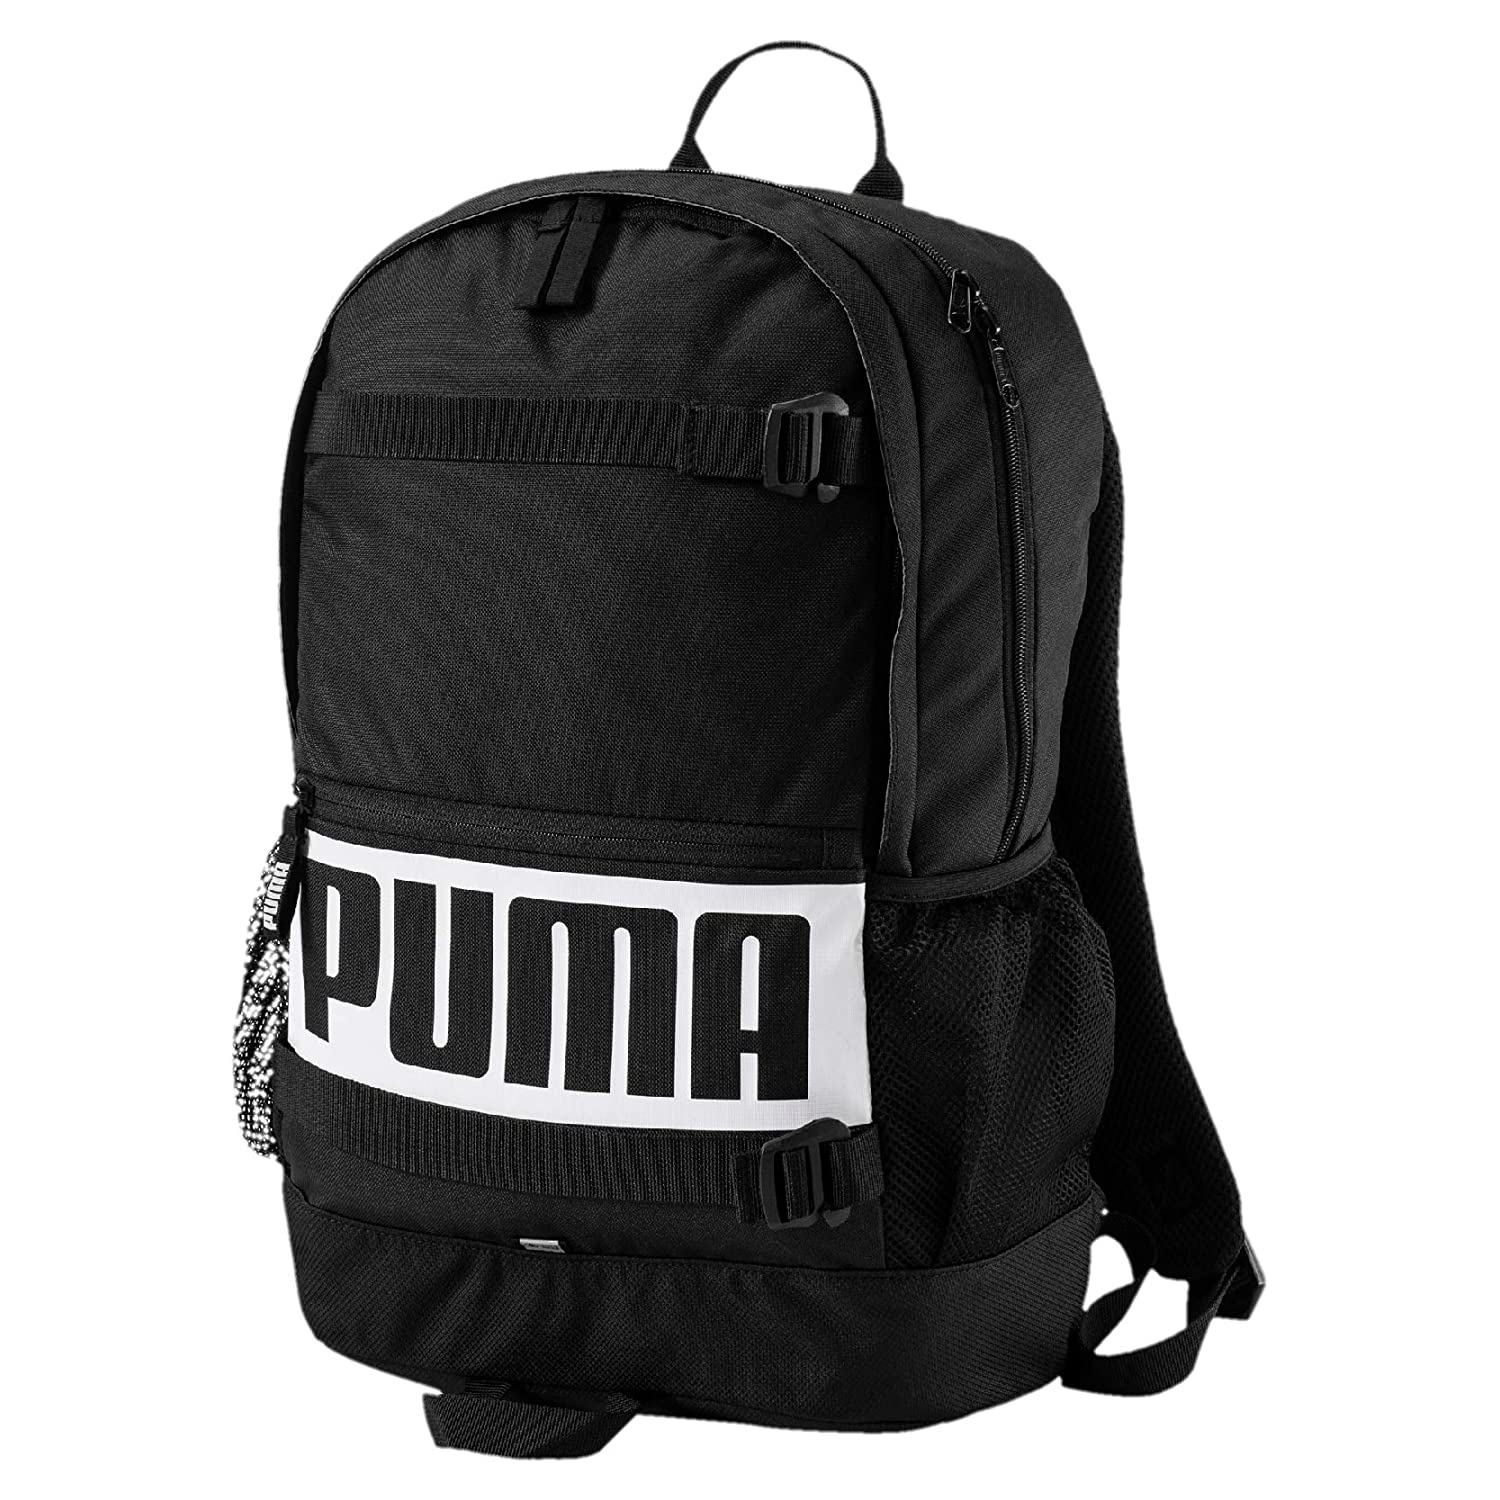 e25f2234fe Puma 24 Ltrs Black Laptop Backpack (7470601)  Amazon.in  Bags ...